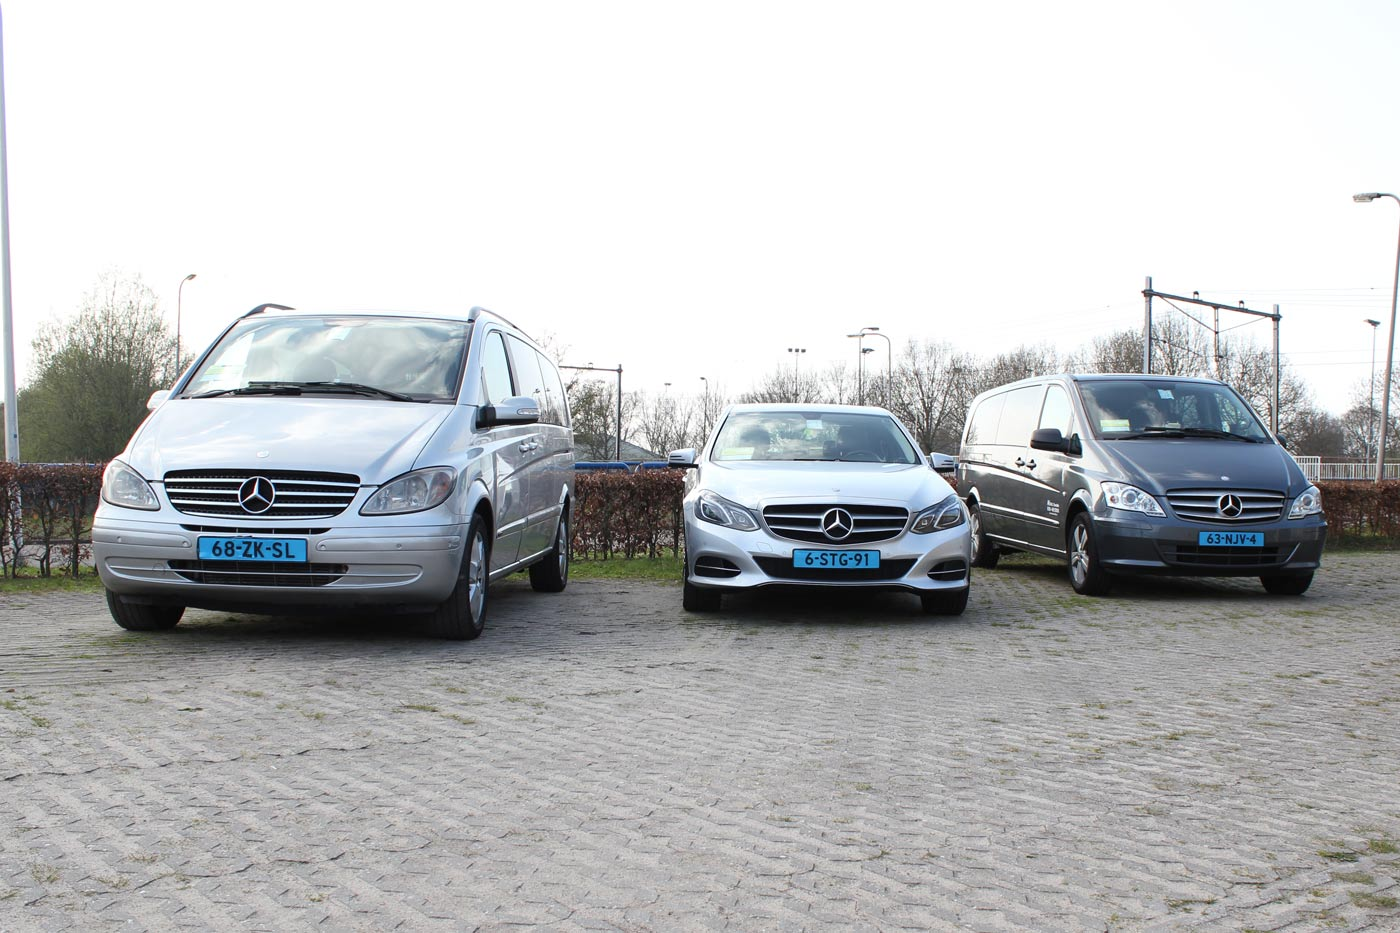 Taxi Zwolle luchthavenvervoer